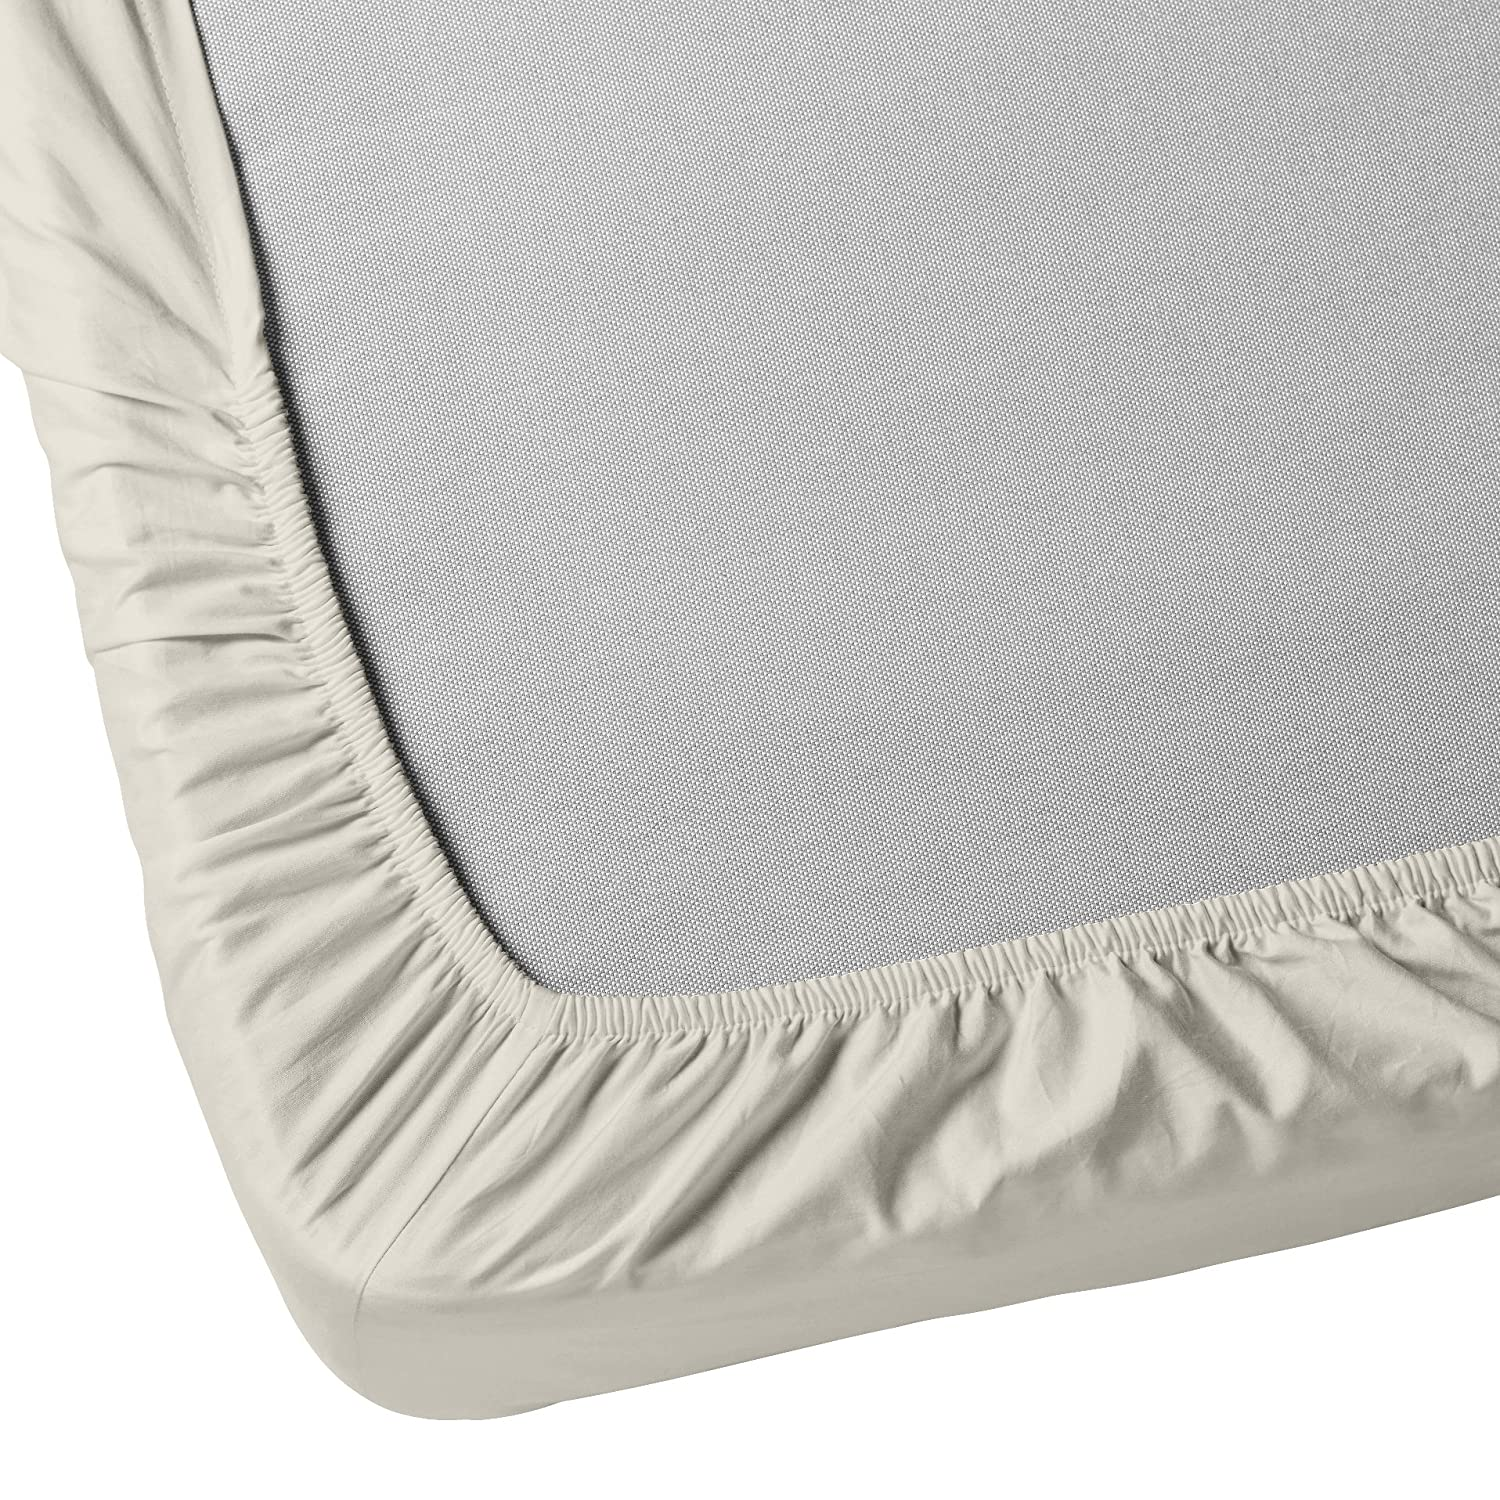 39 X 75 with 14 Deep Pocket Pack of 1 Cream Hypoallergenic Jersey Knit Twin Size Fitted Bottom Sheets Ideal for Twin Bed Mattress